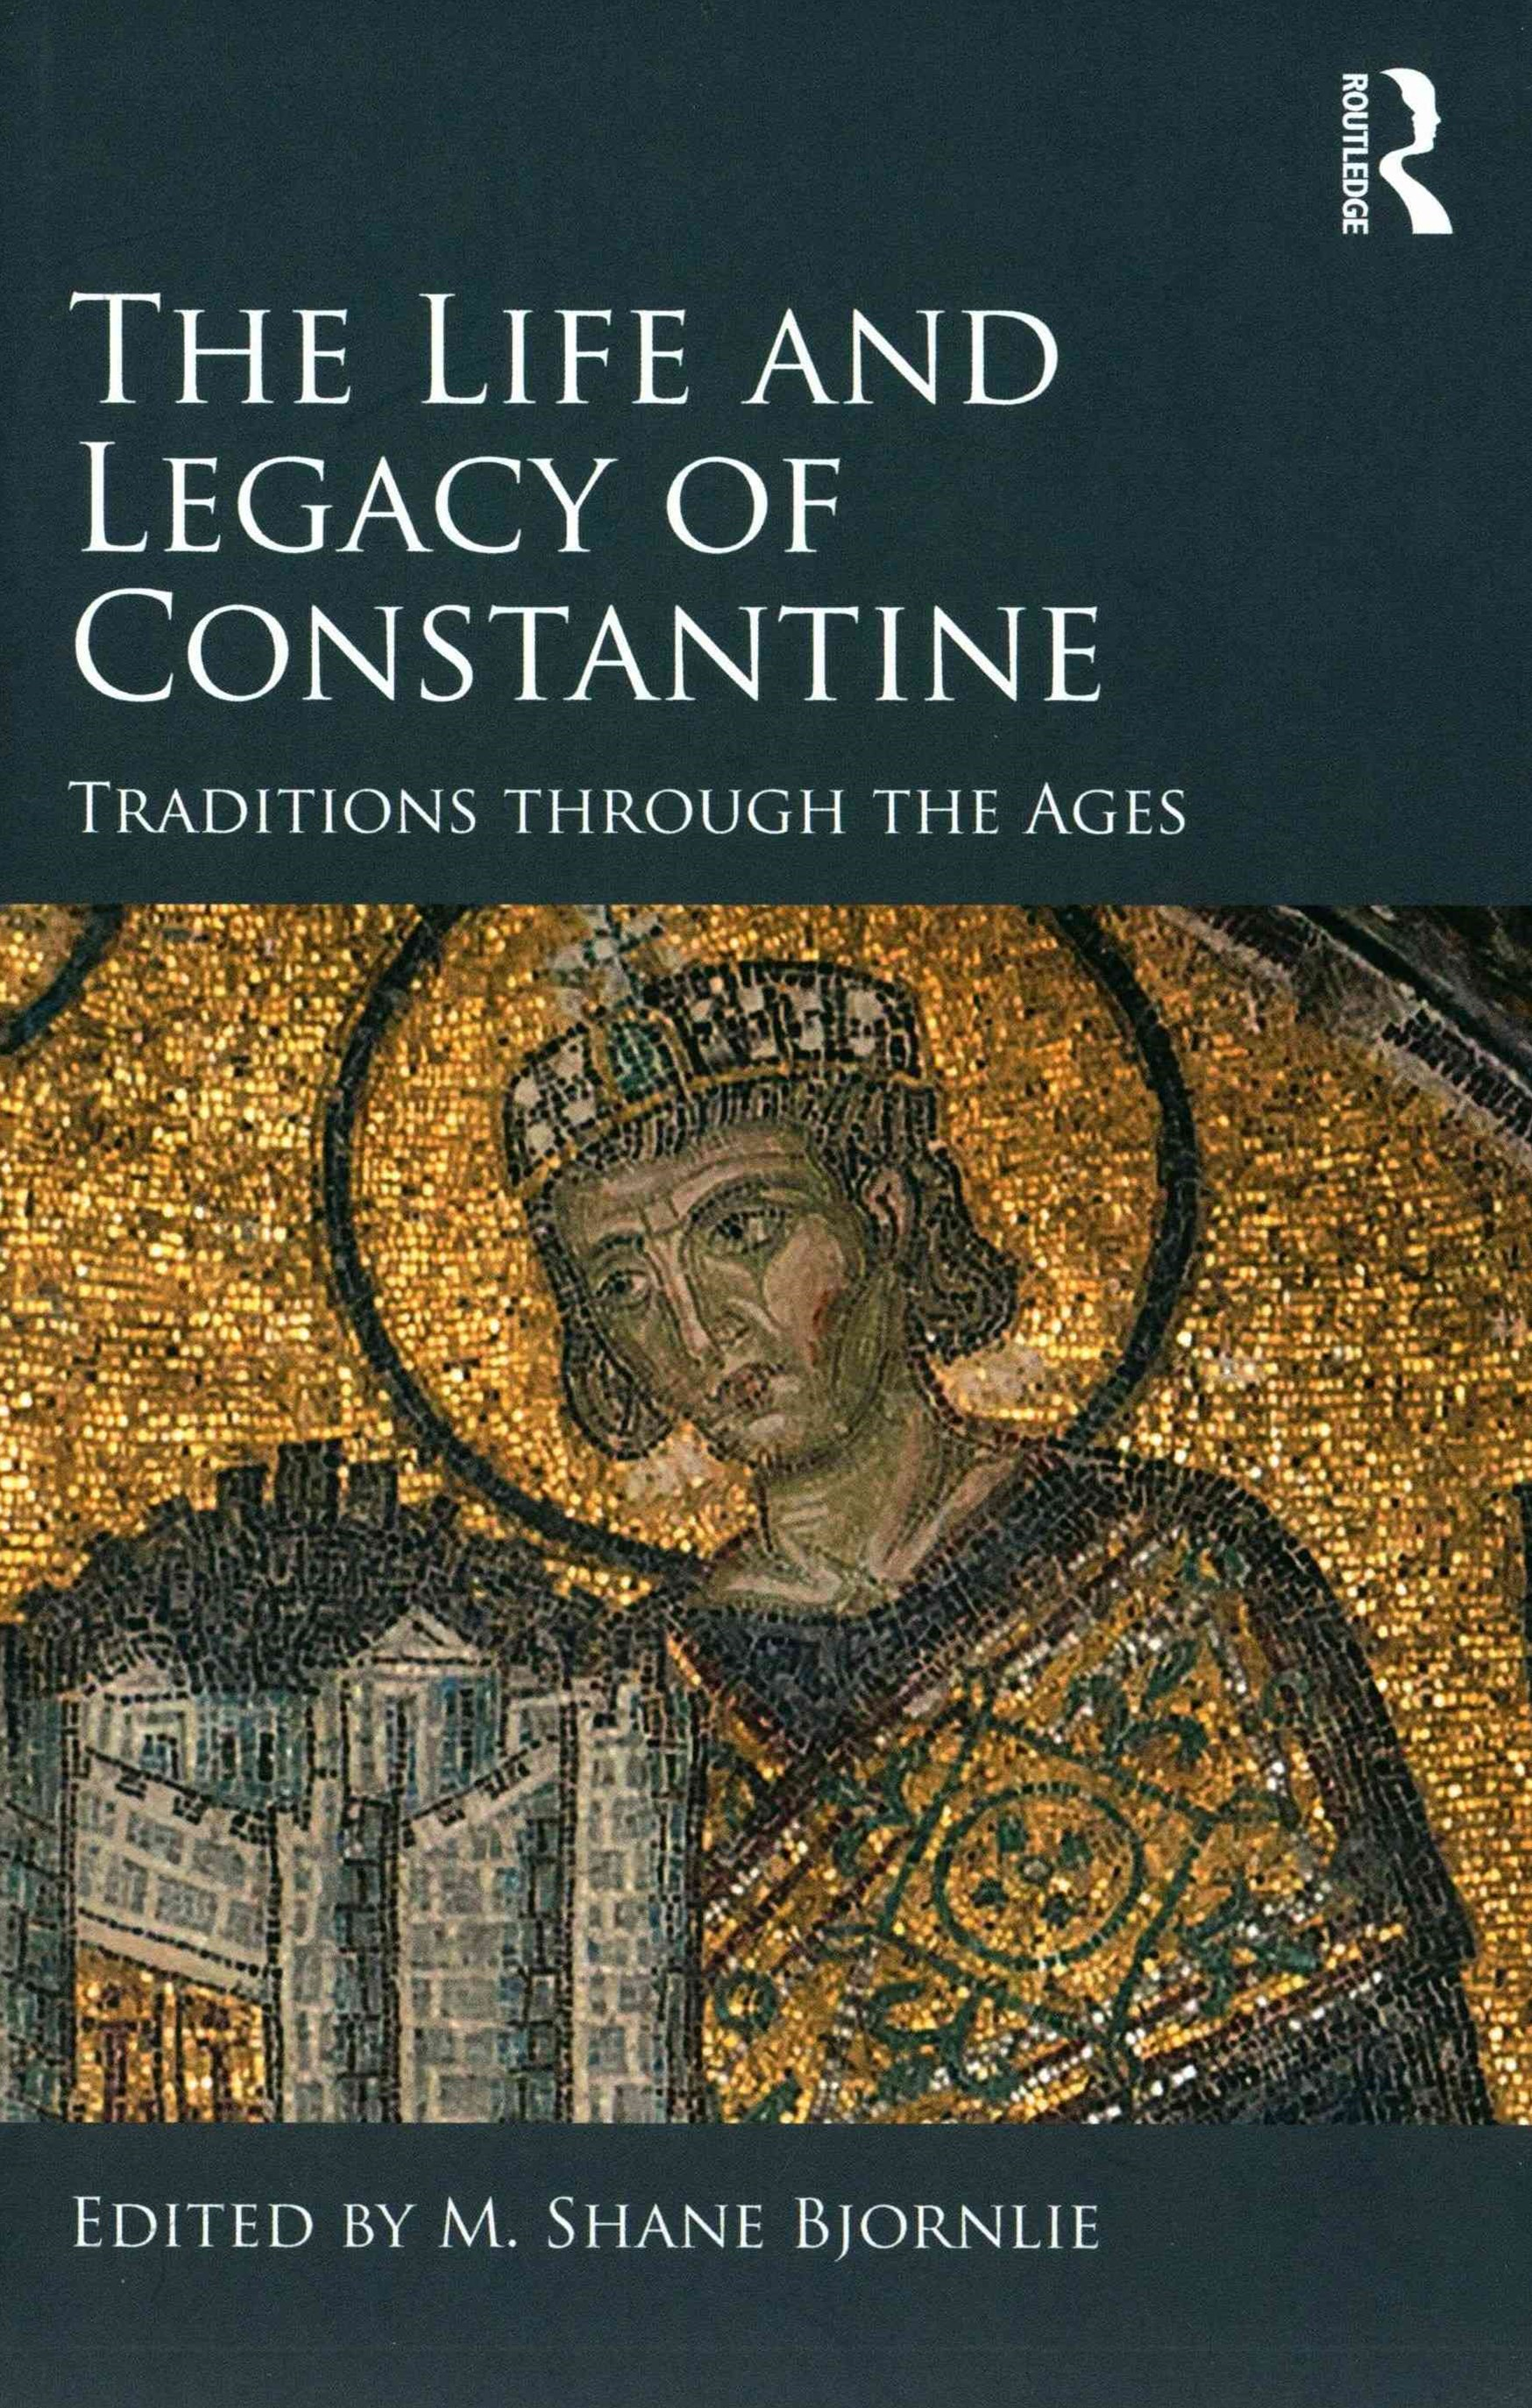 Life and Legacy of Constantine